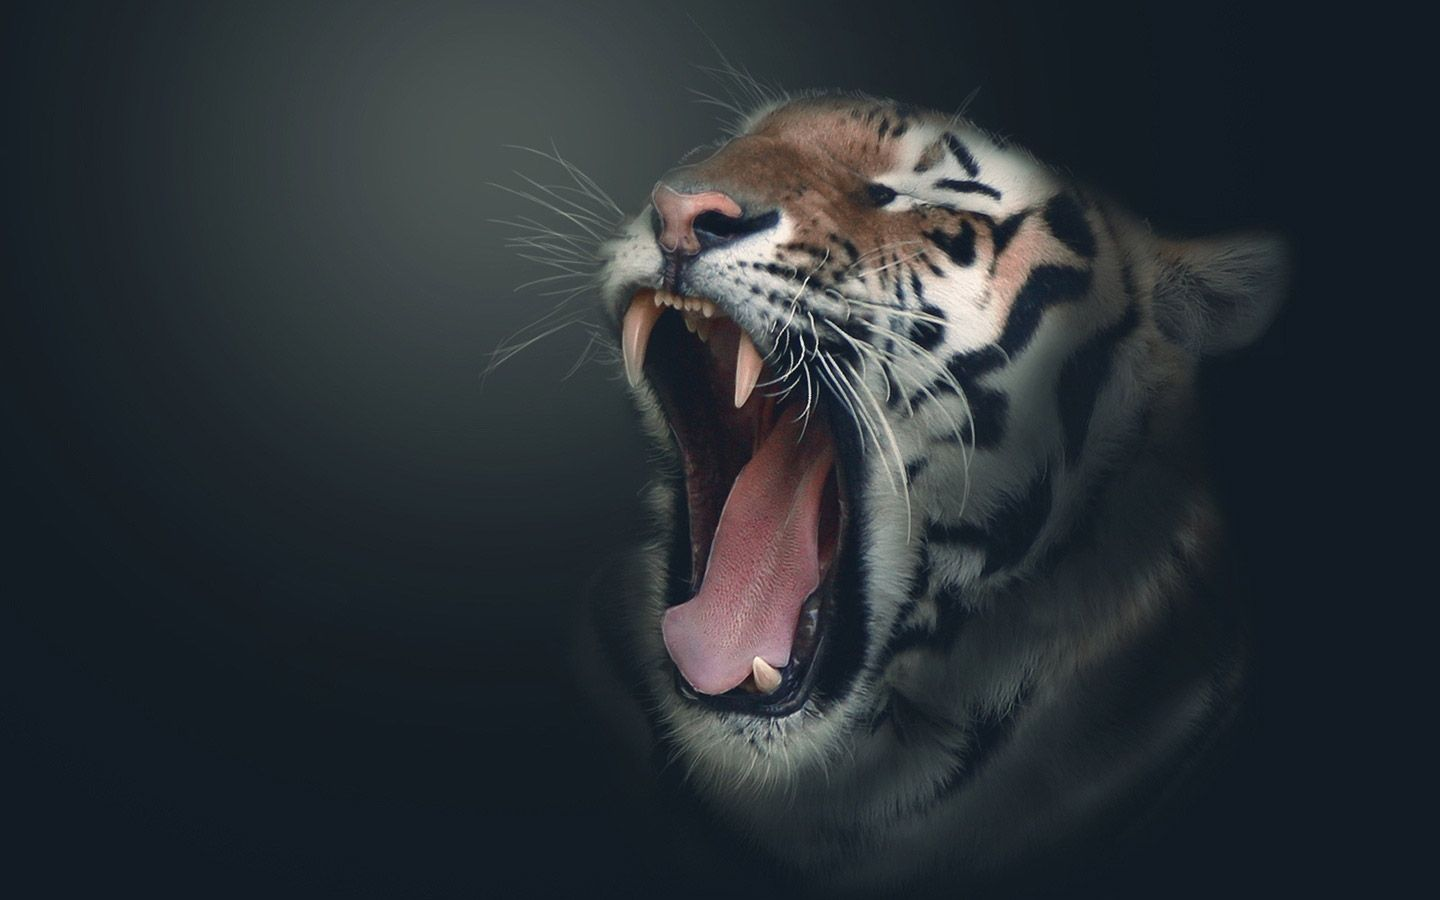 hd 3d hd wallpapers tiger on hd wallpaper with 3d hd wallpapers